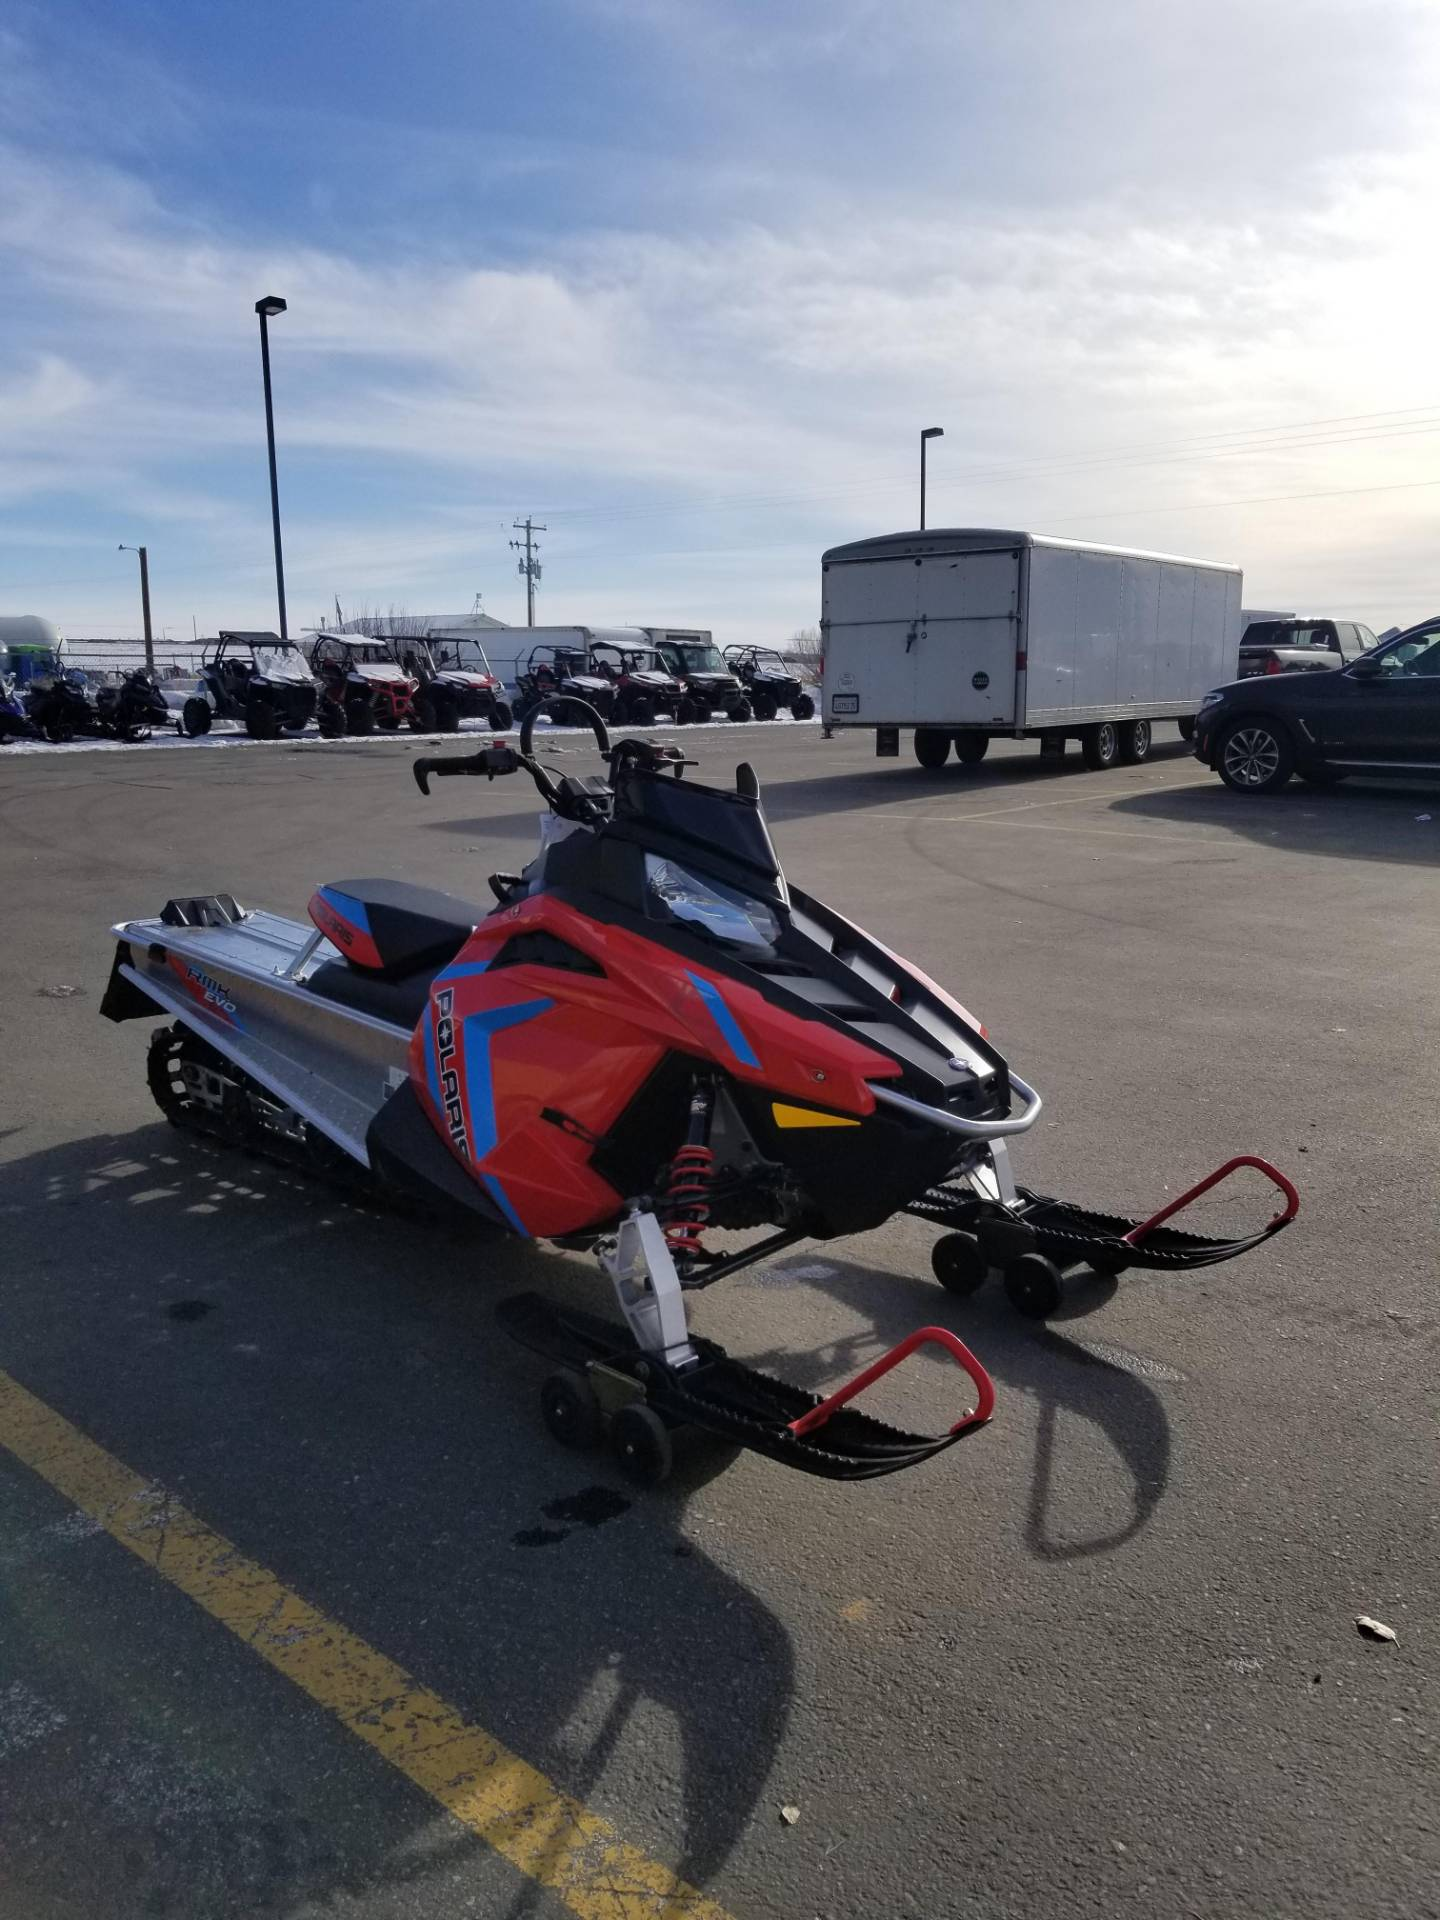 2020 Polaris 550 RMK EVO 144 ES in Rexburg, Idaho - Photo 5